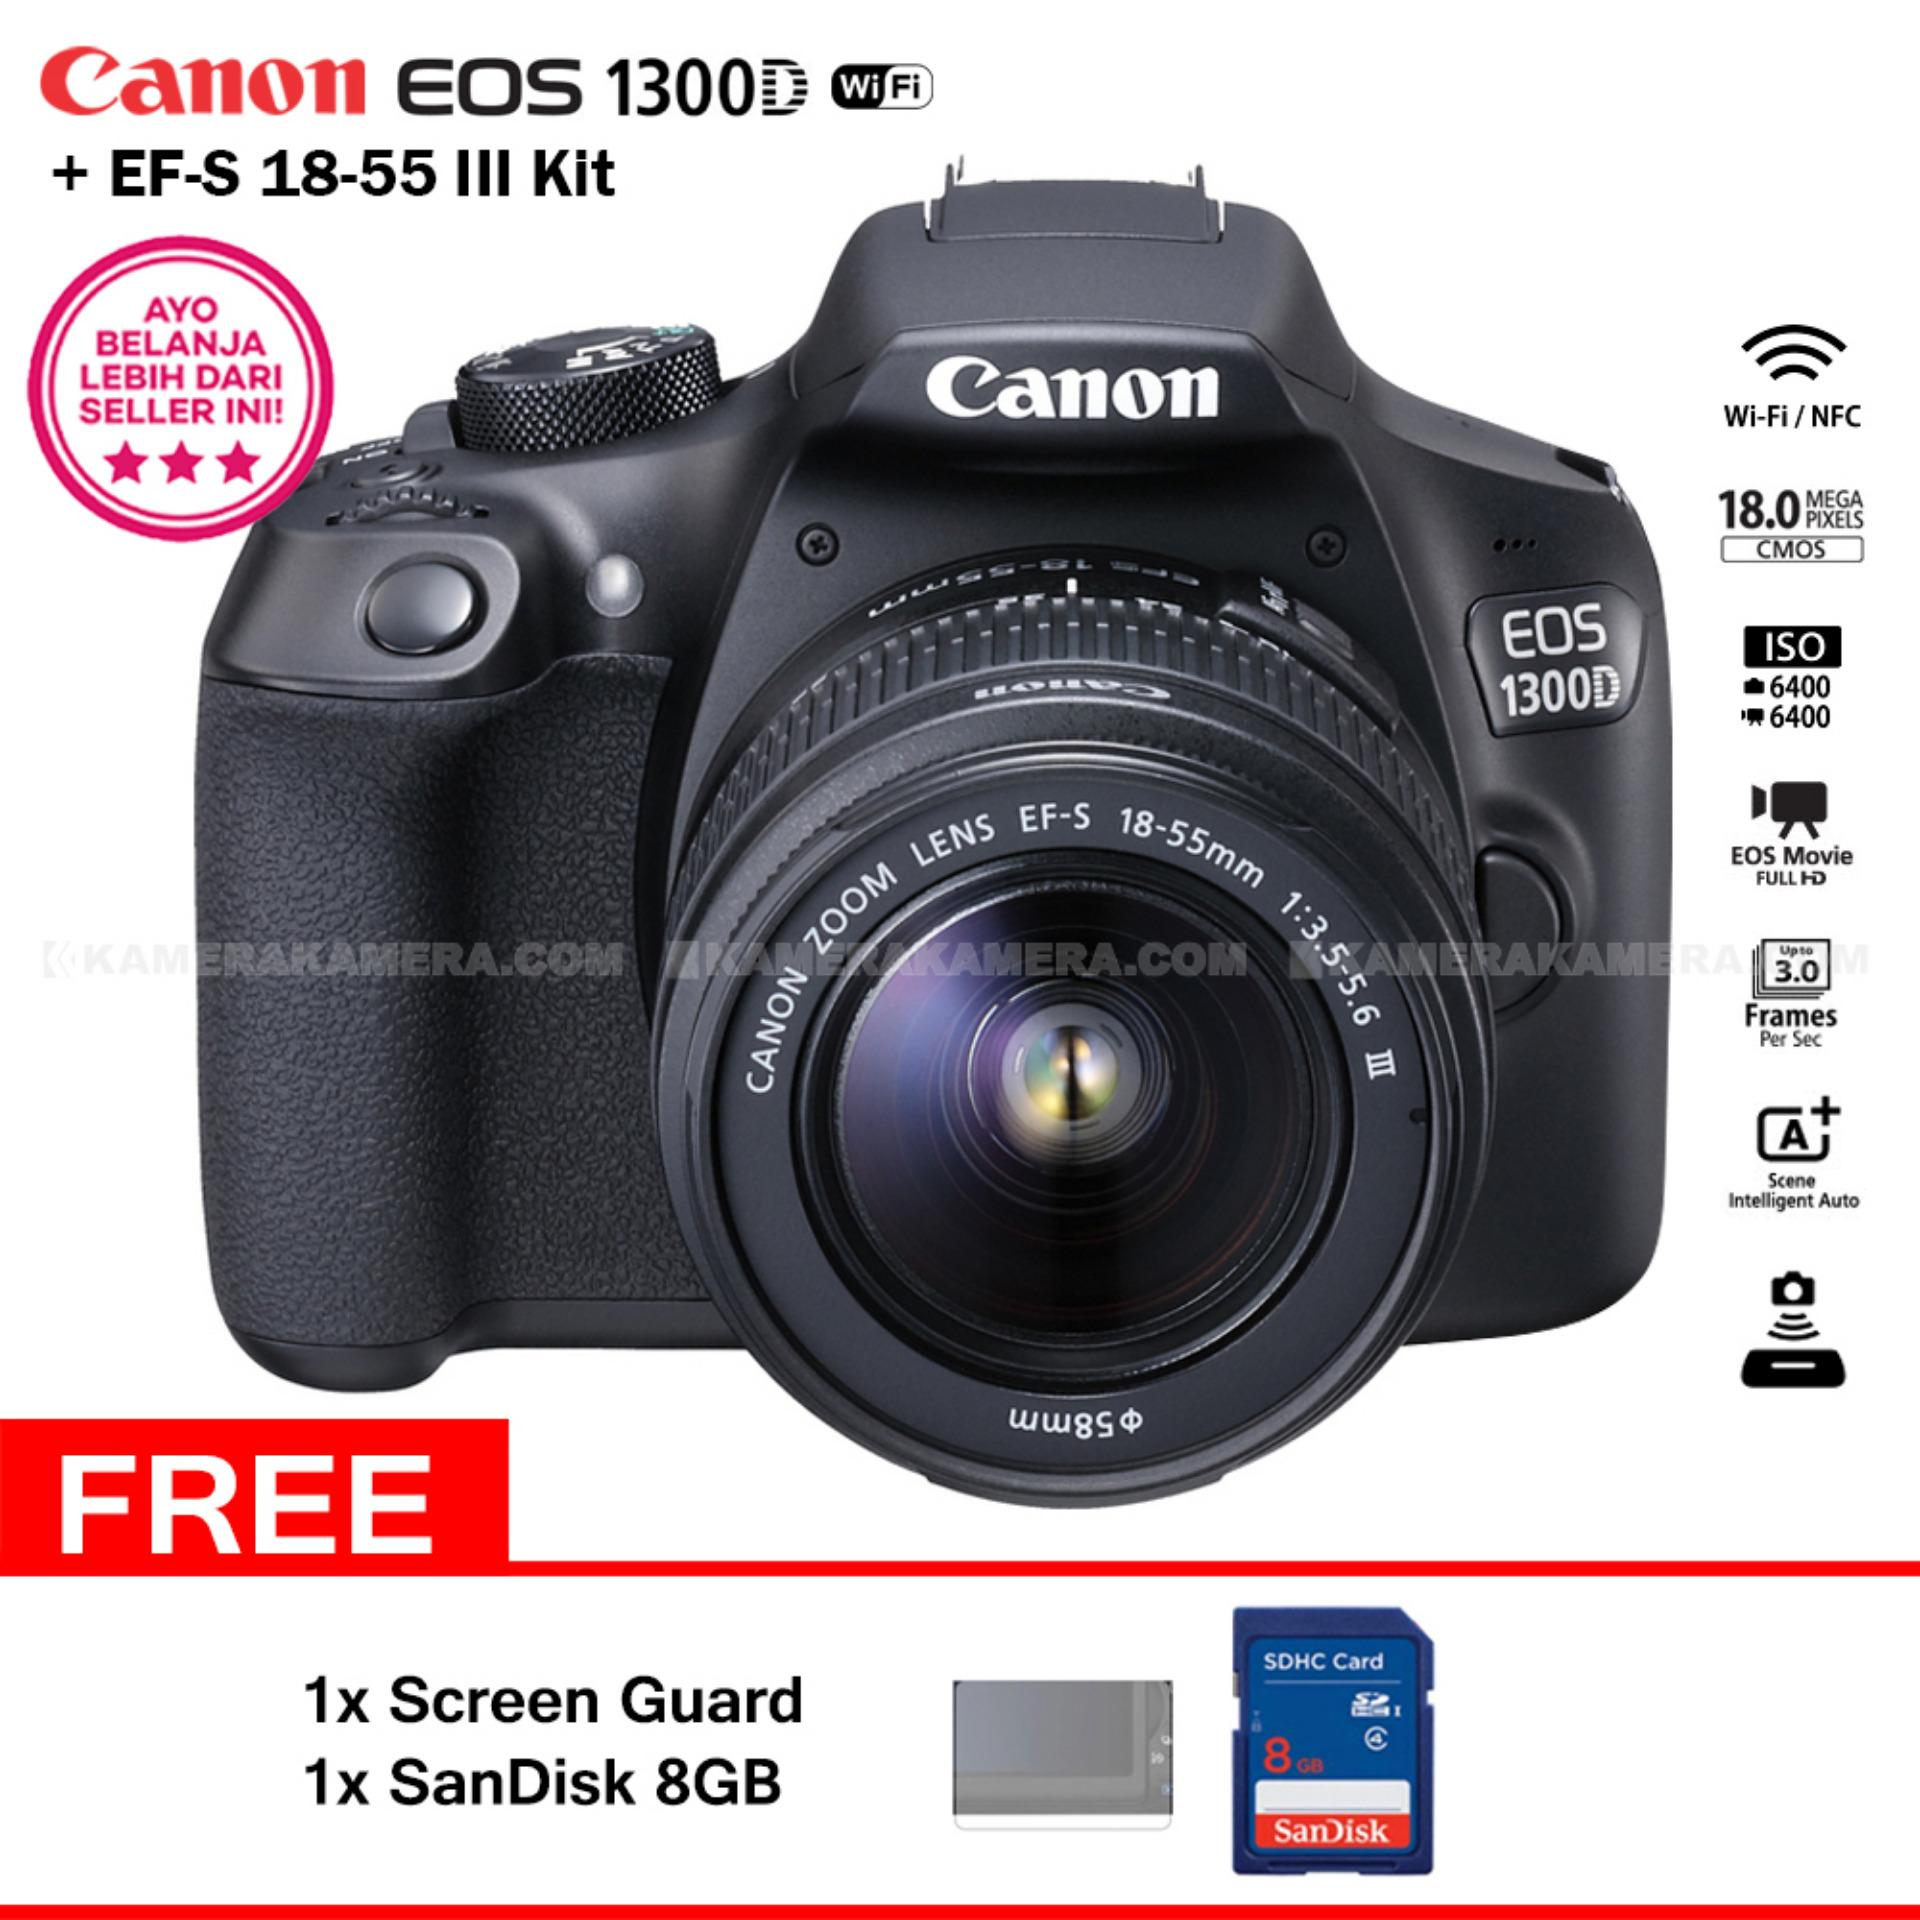 Canon EOS 1300D (Wi-Fi) EF-S 18-55mm III + Screen Guard + SanDisk 8GB